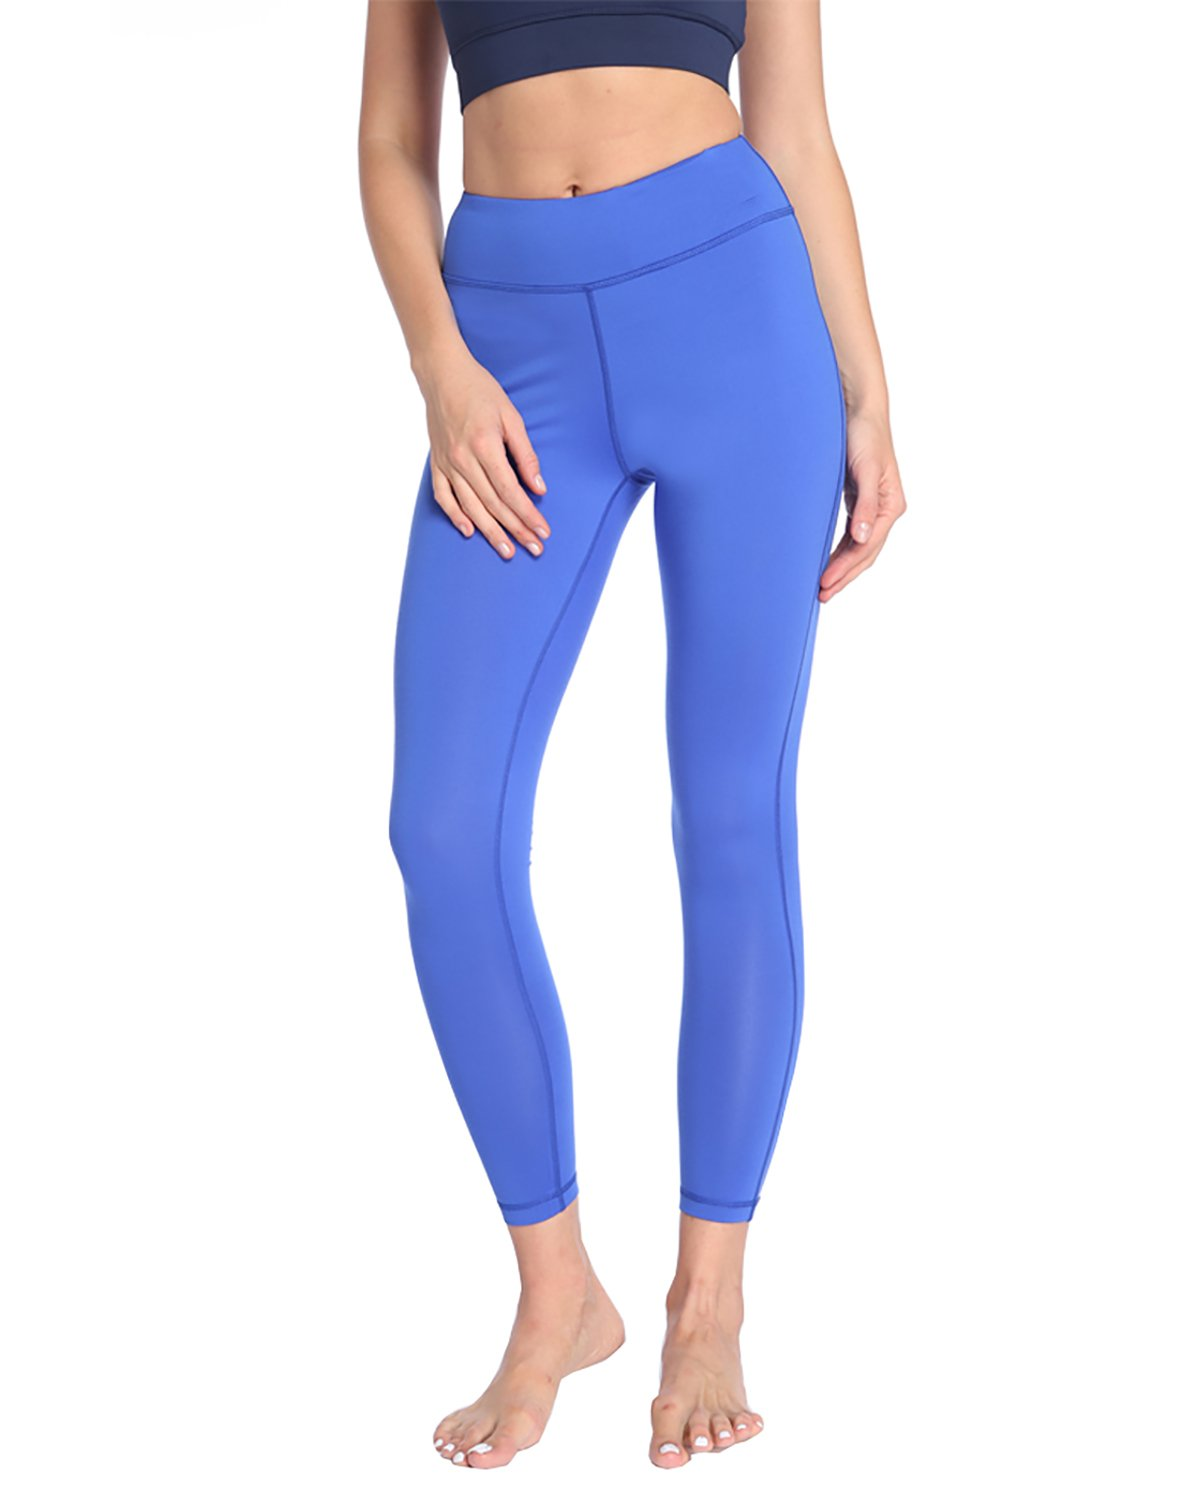 X-HERR Womens Compression Workout Yoga Leggings Power Flex Exercise Fitness Yoga Pant with High Waist Pockets (Blue,L)